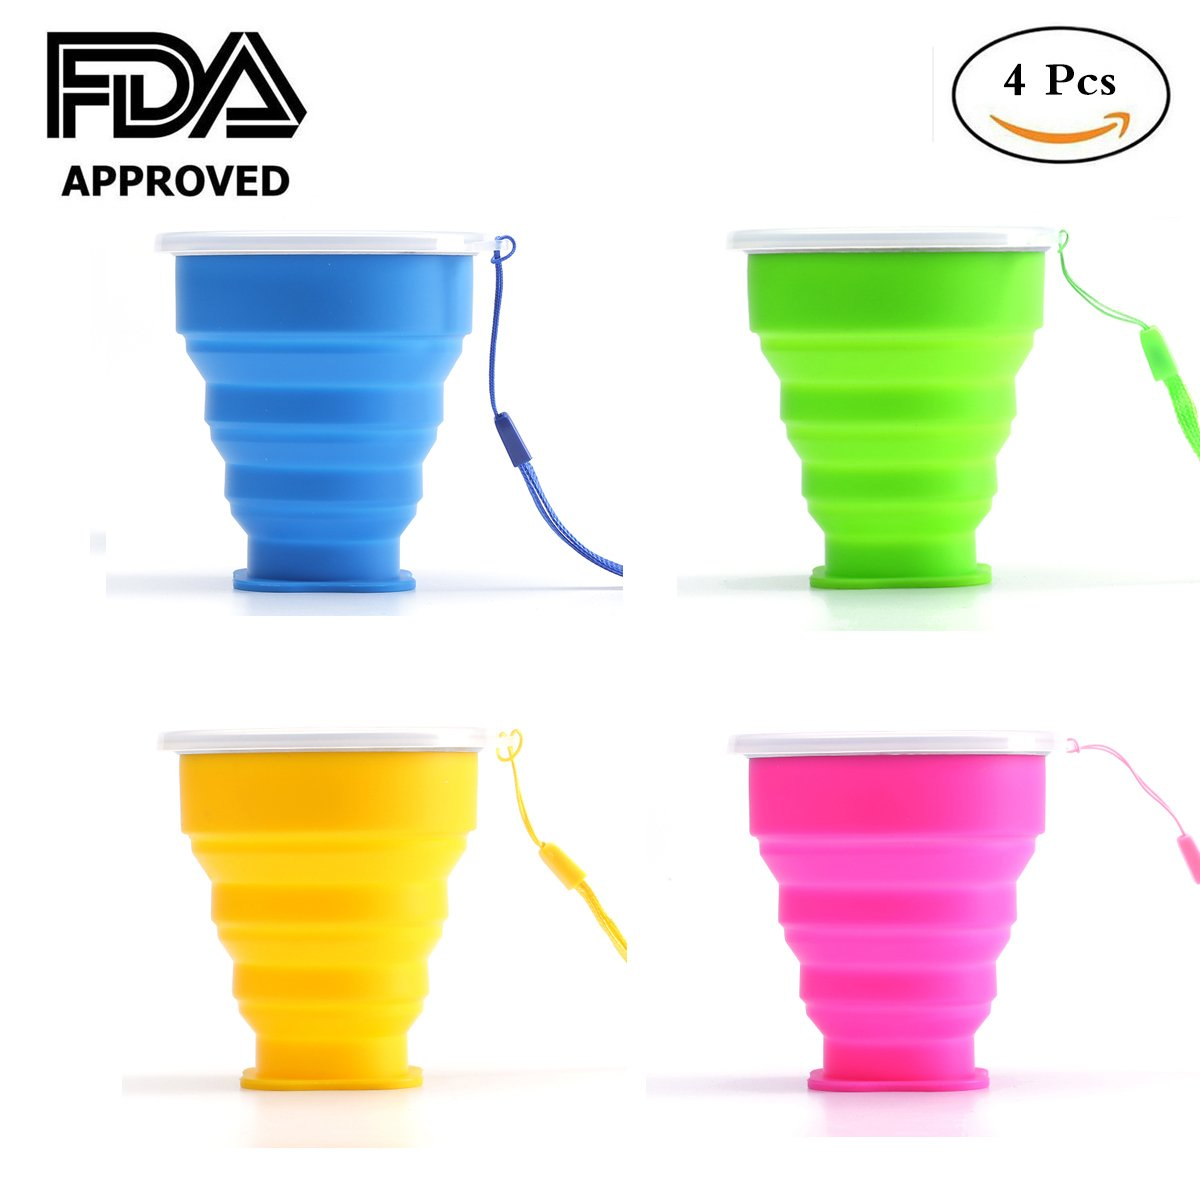 aoxiangシリコン折りたたみ可能なカップ – シリコン折りたたみトラベルキャンピングカップwith Lids – Expandable Drinking Cup – BPAフリーポータブル折りたたみ式4パック  NO3 B07DQJRTH6